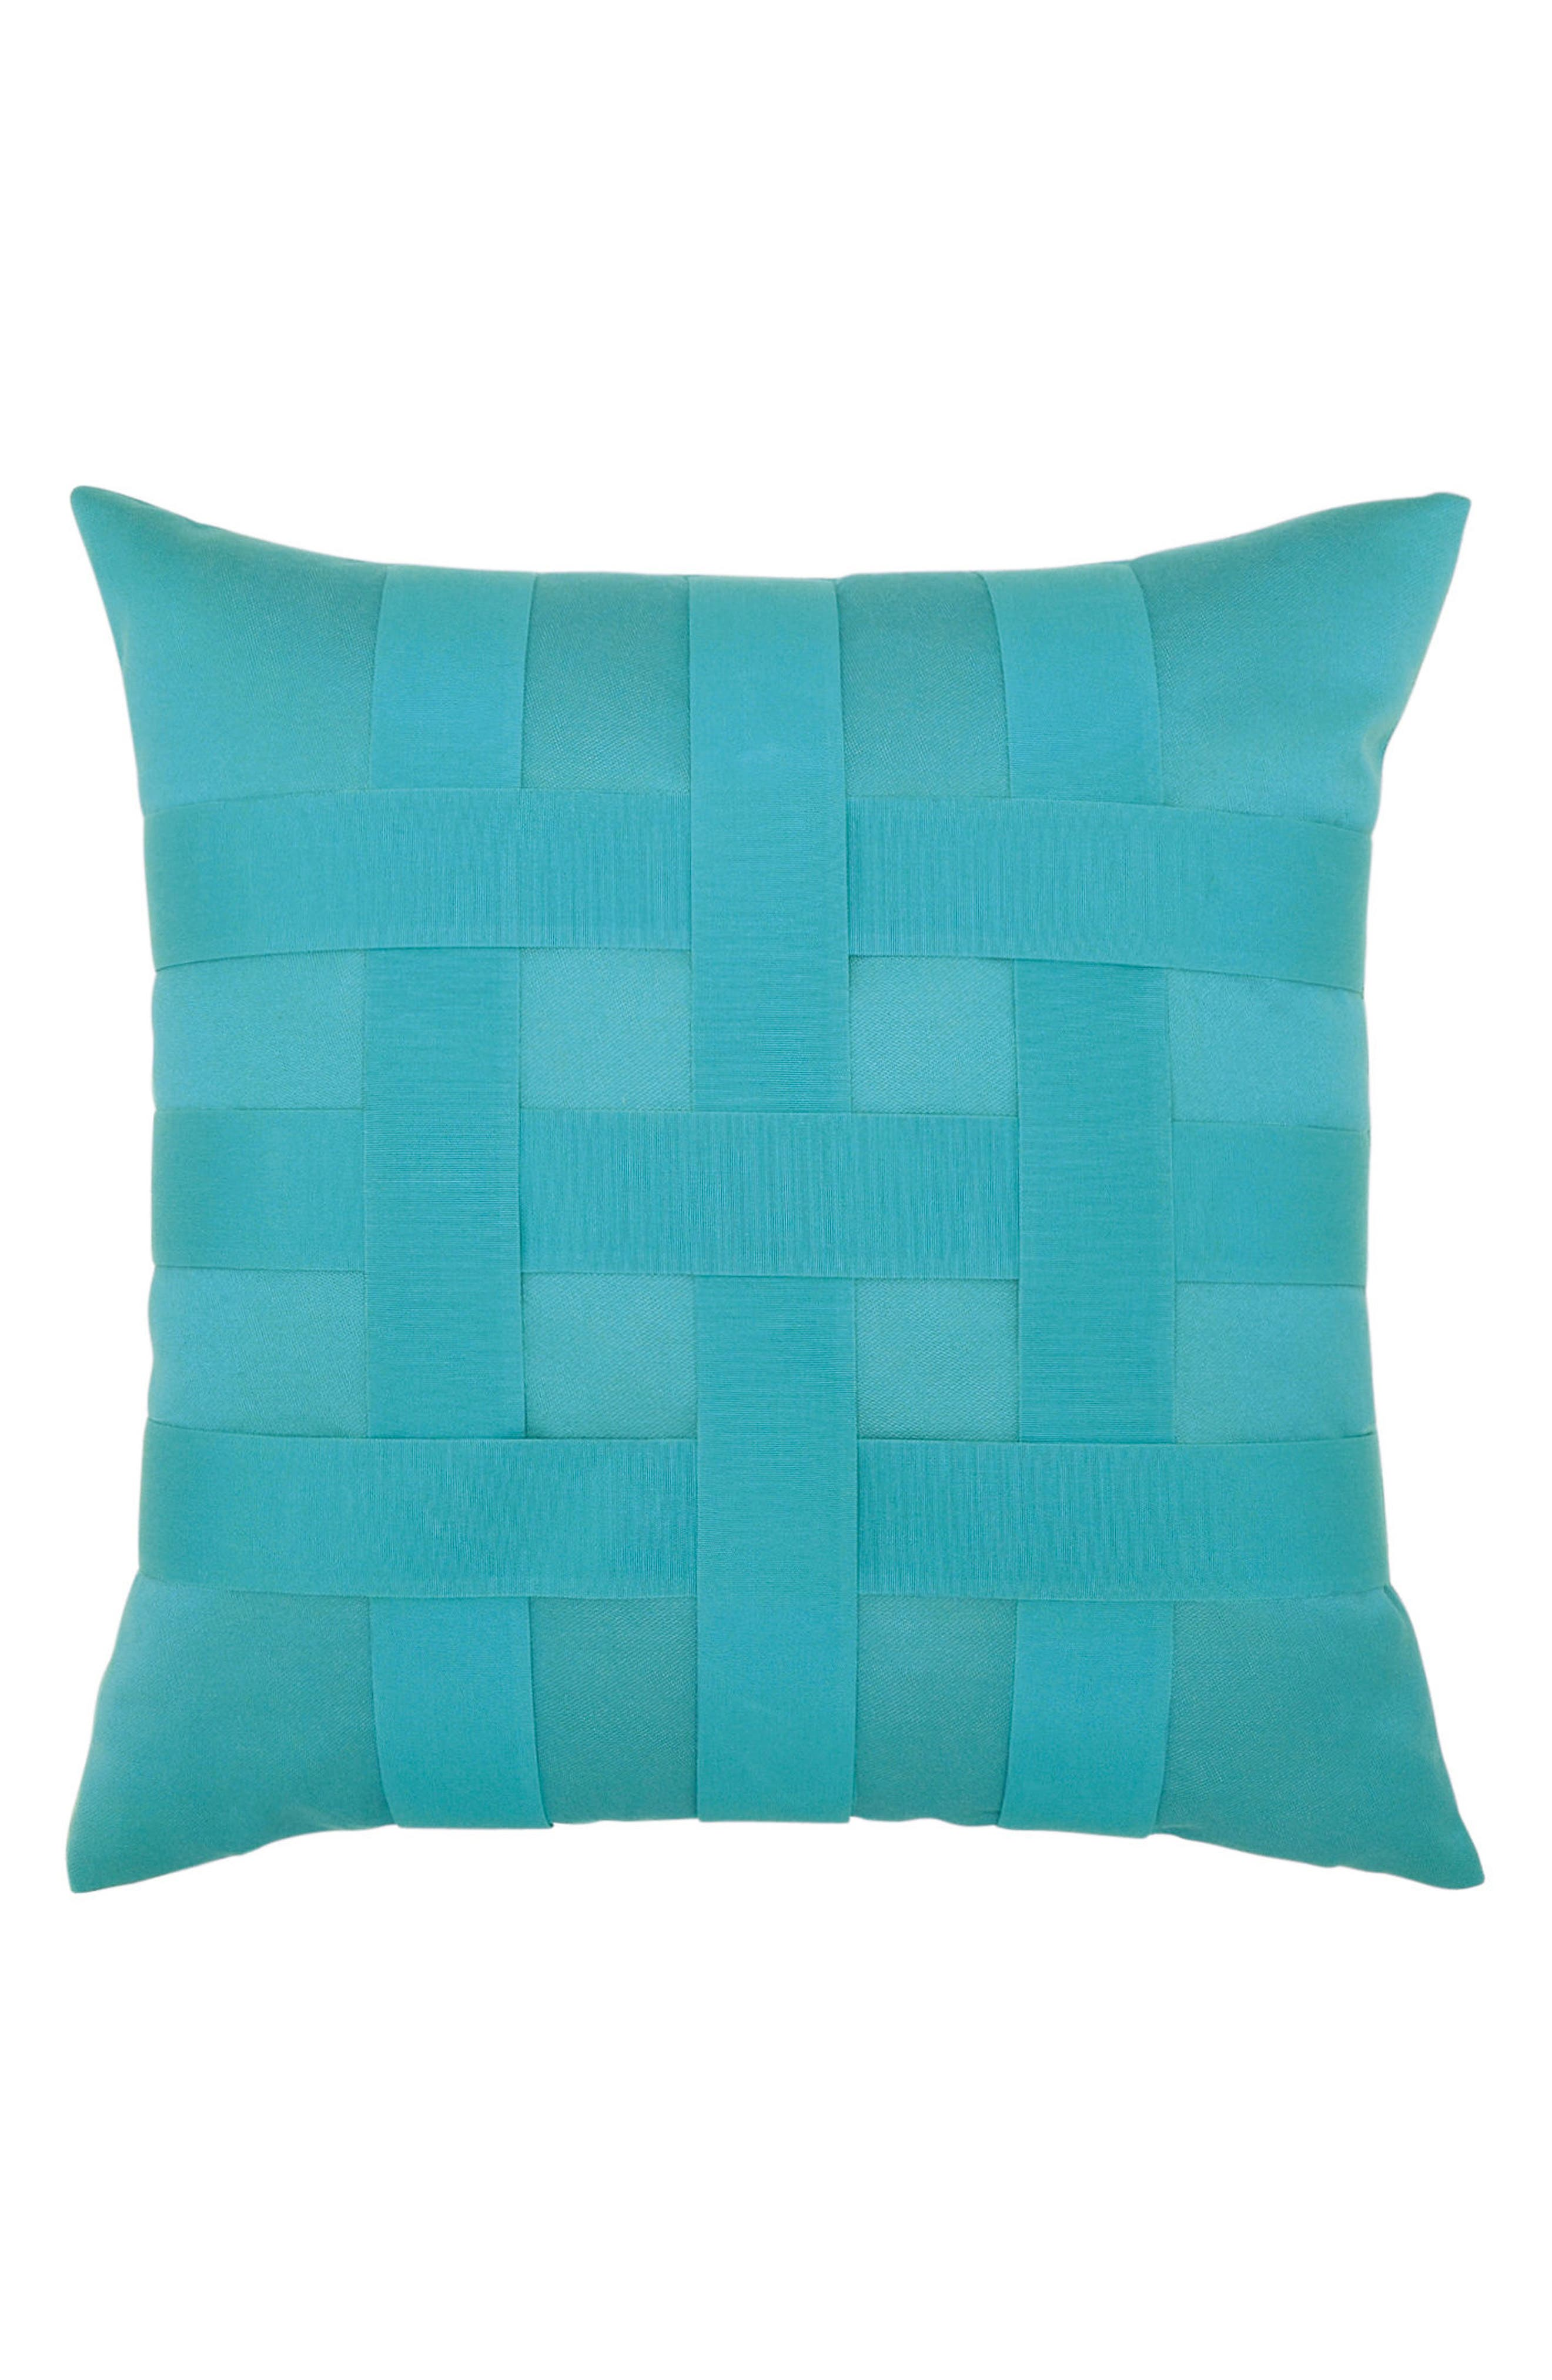 Basket Weave Indoor/Outdoor Accent Pillow,                         Main,                         color, Blue